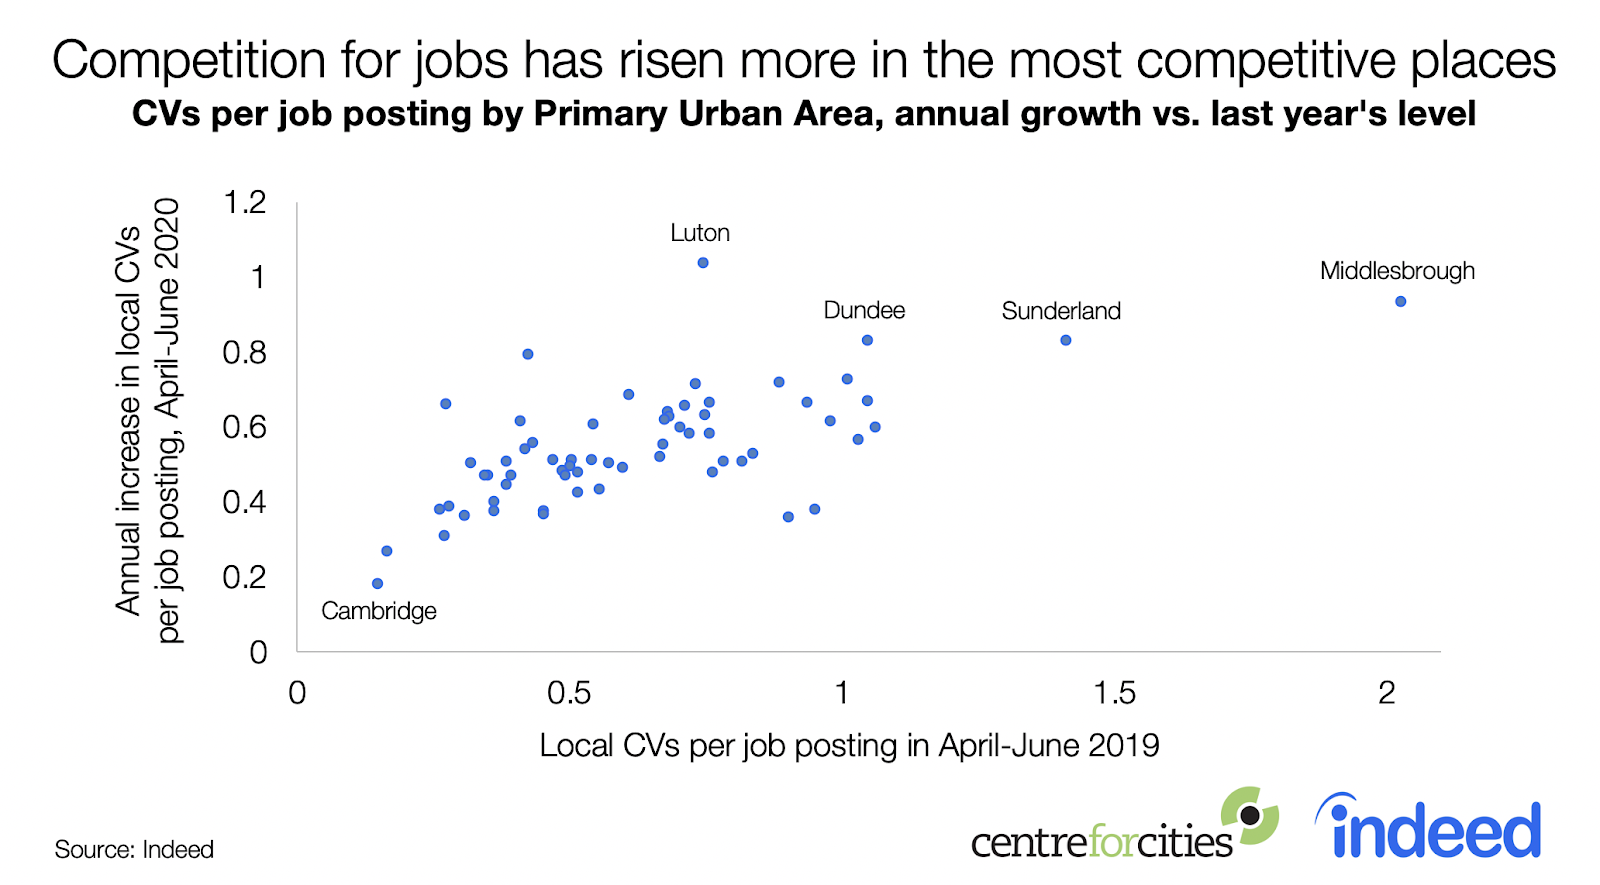 Competition for jobs has risen more in the most competitive places